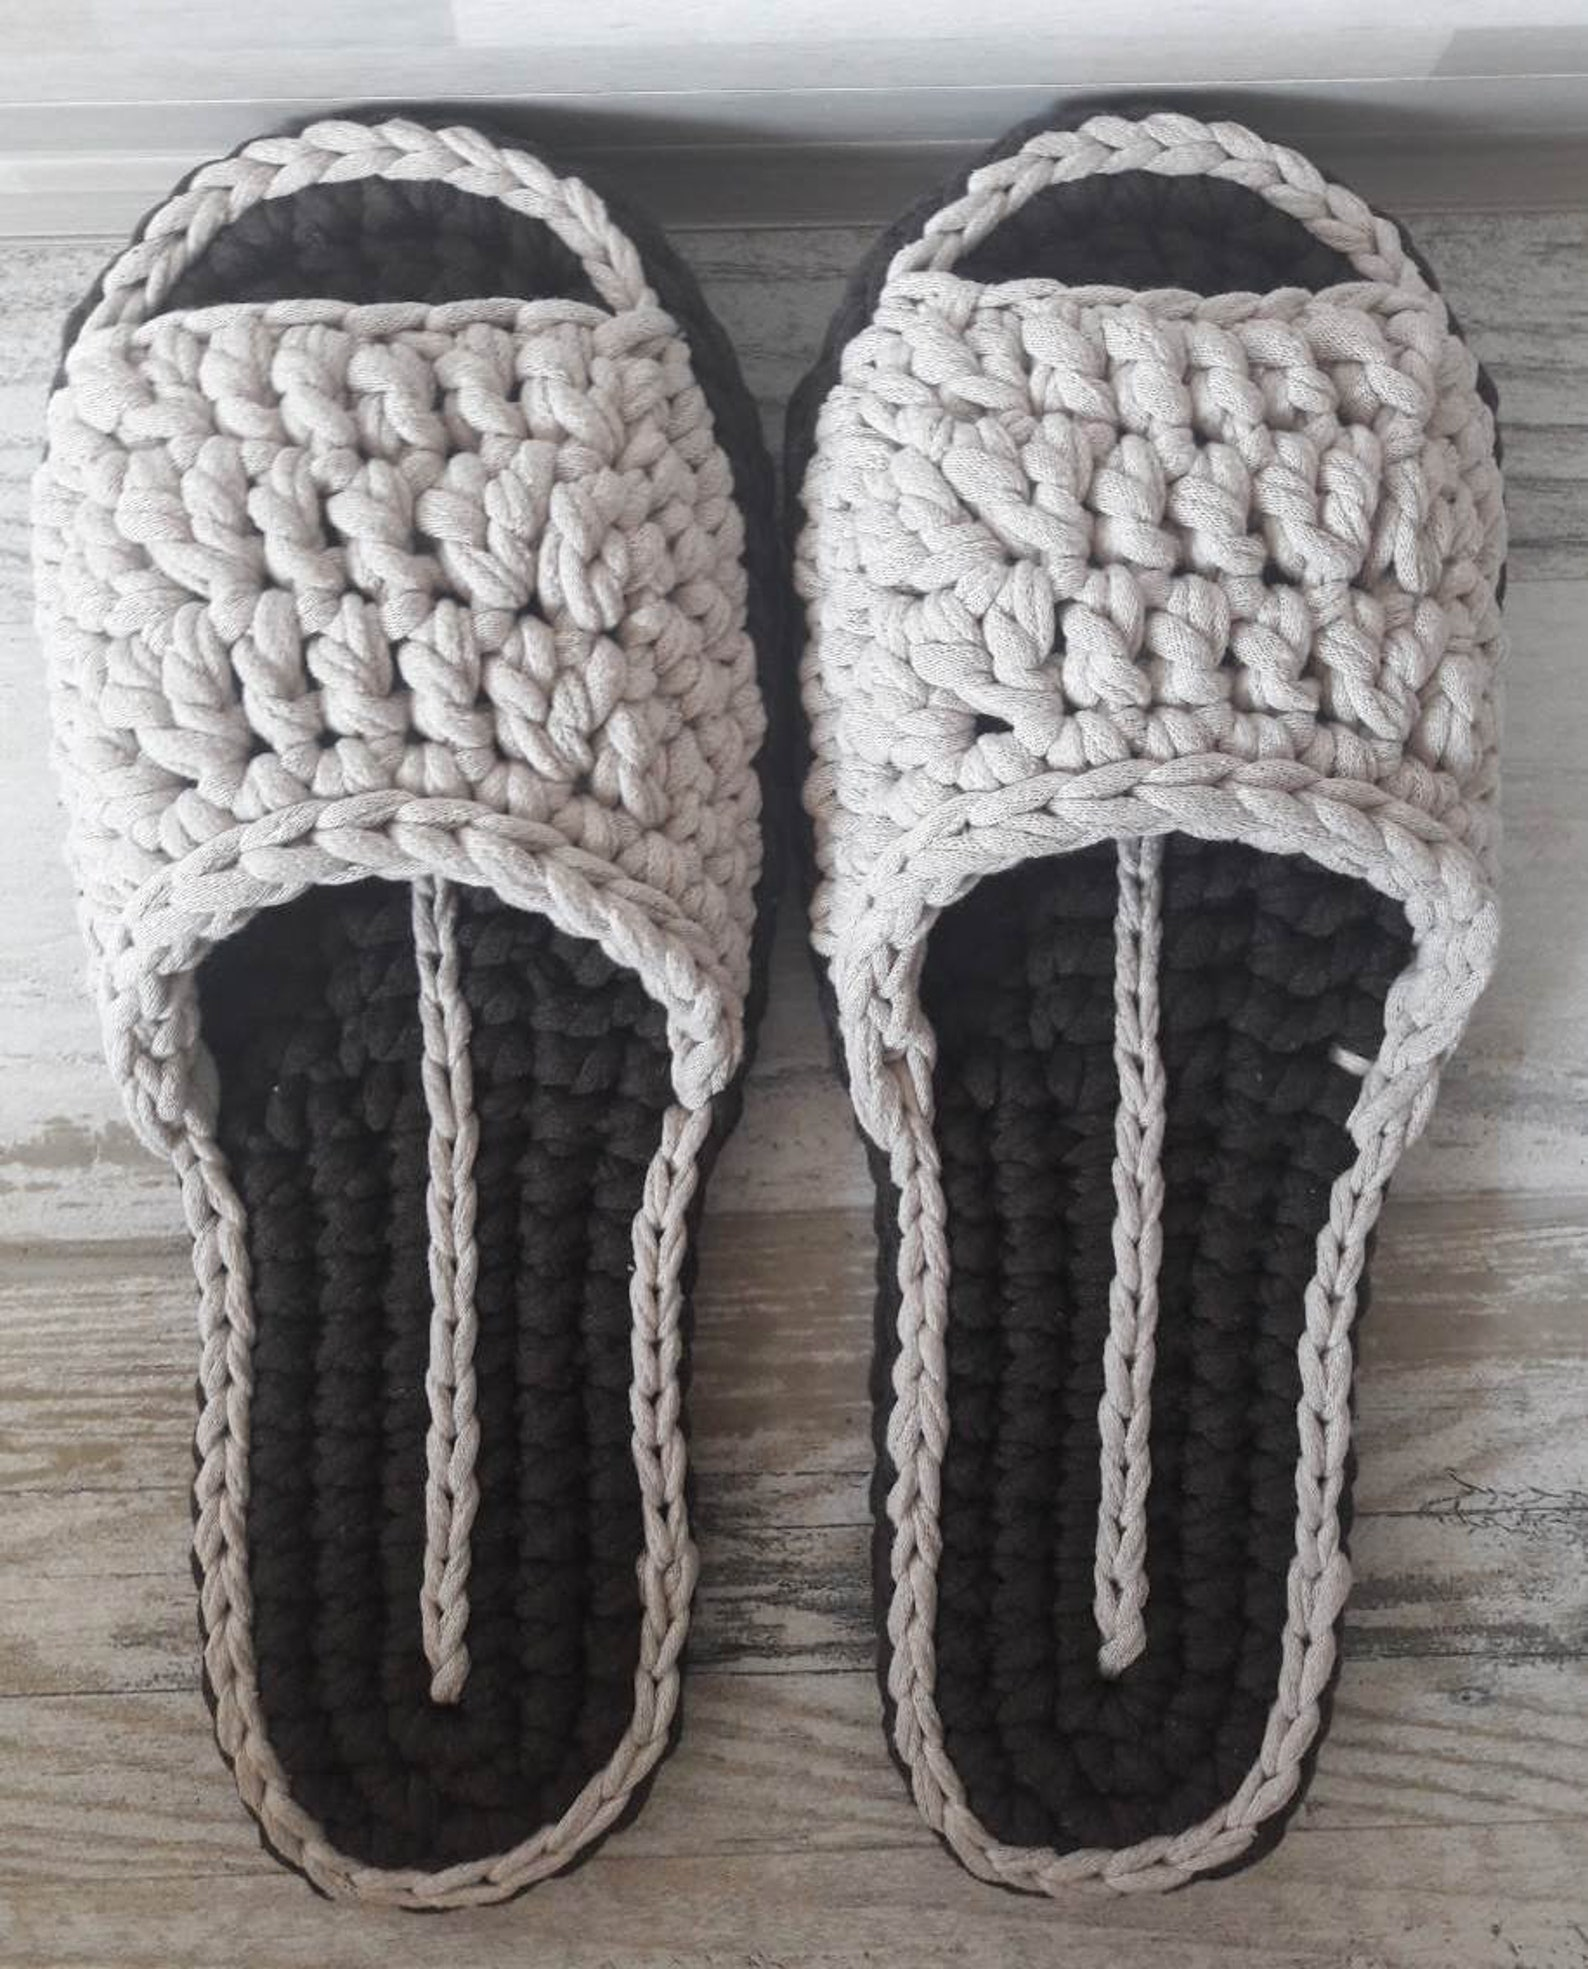 super cotton slippers,furry gray / black,fur pom-poms,knitted,barefoot sandals,non-slip house shoes,ballet flats,gift wrap,mothe